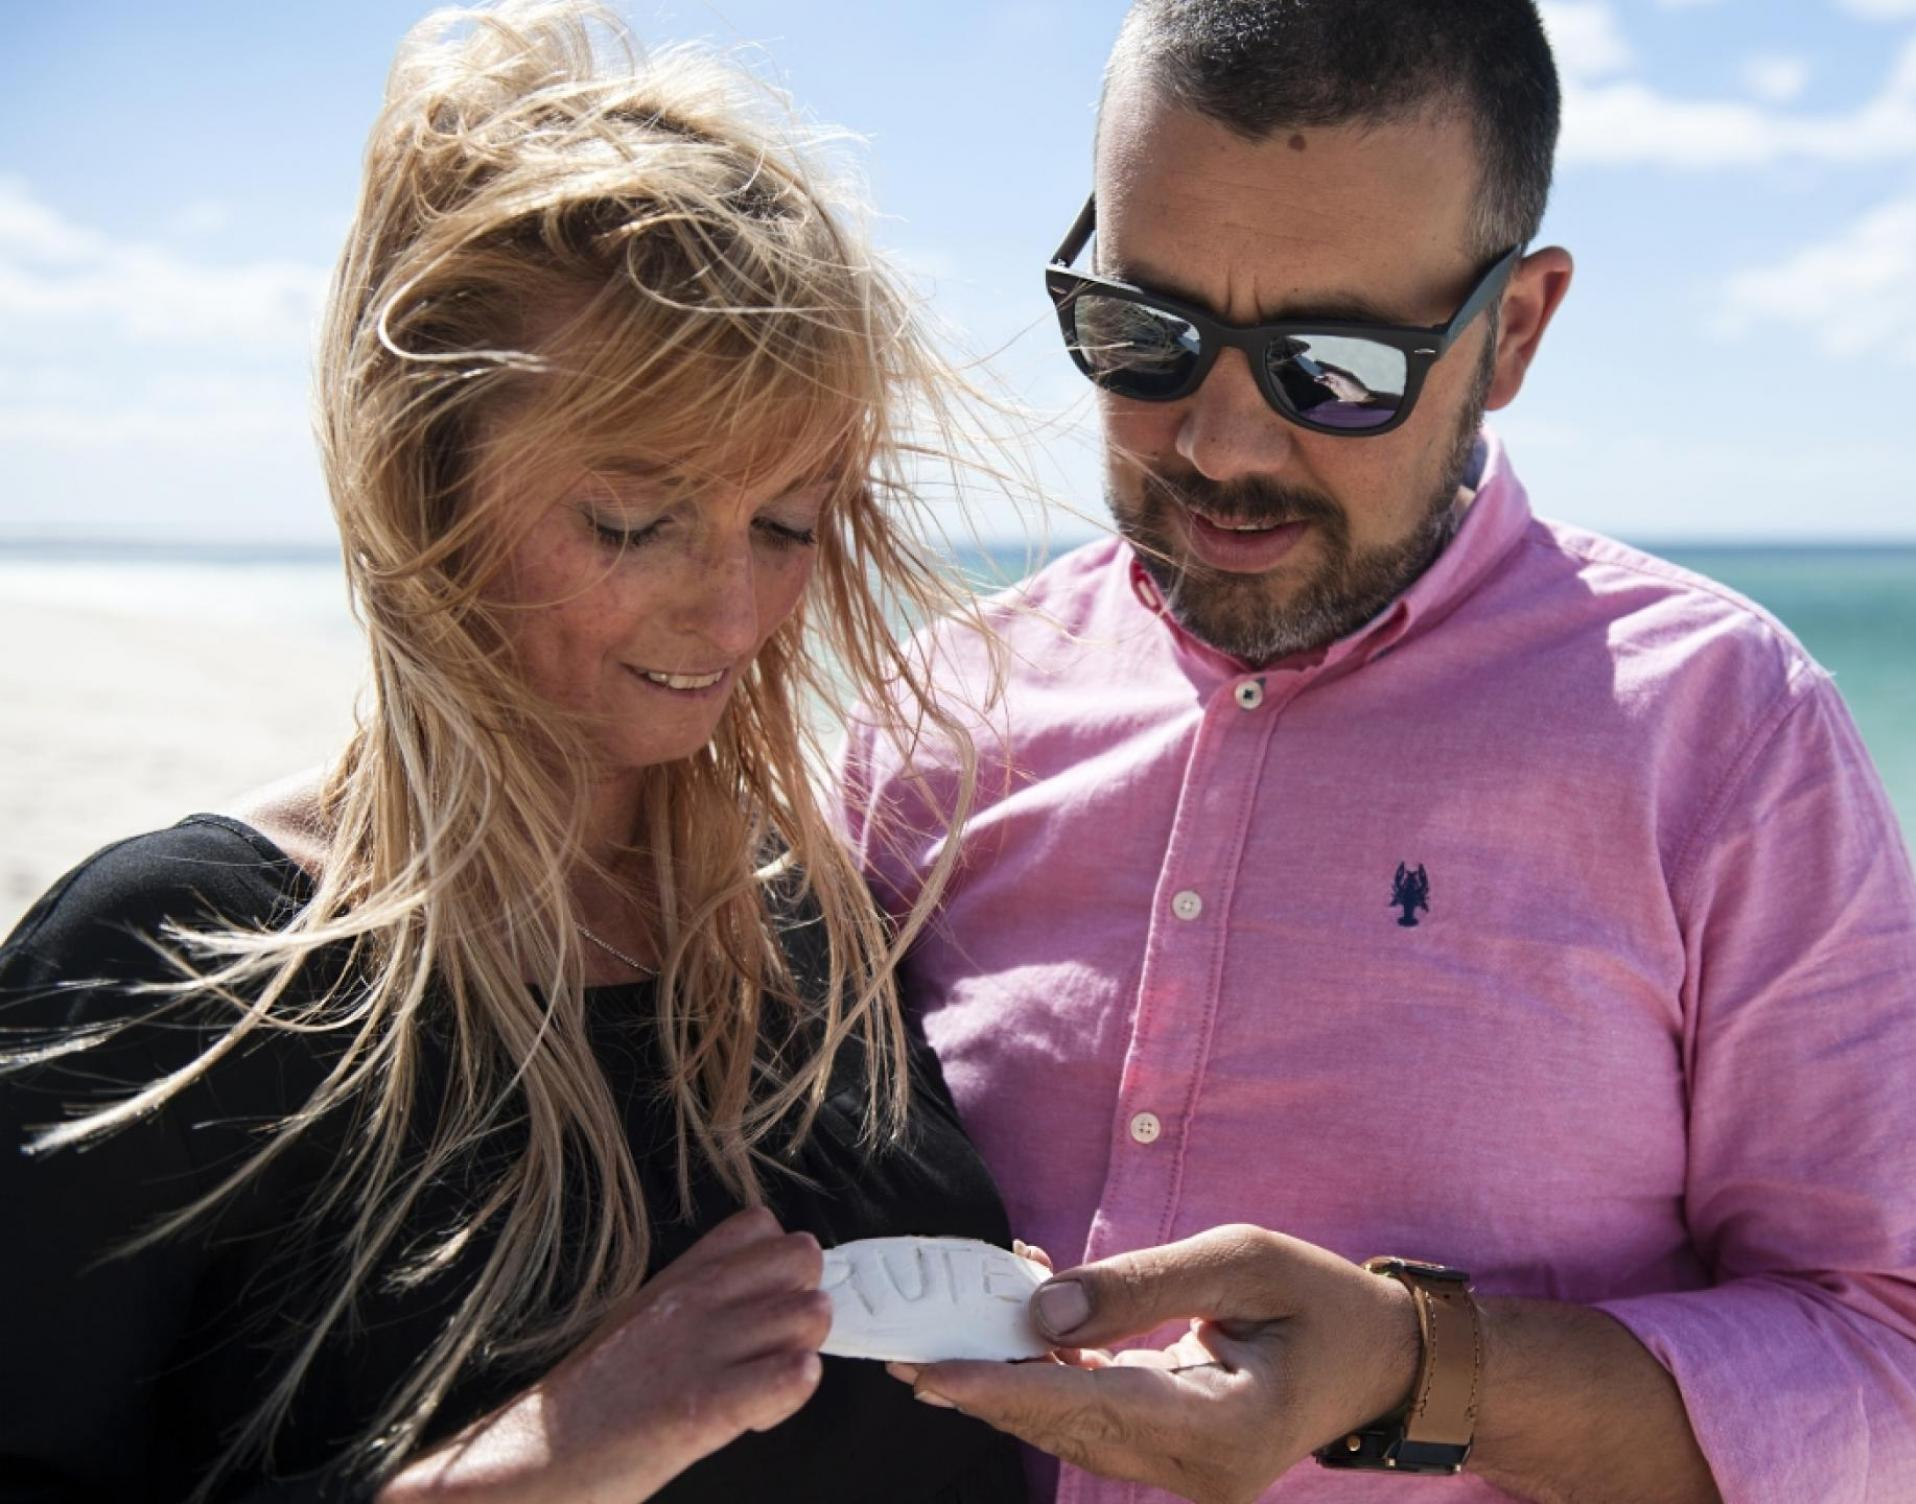 Rute and her husband at the beach